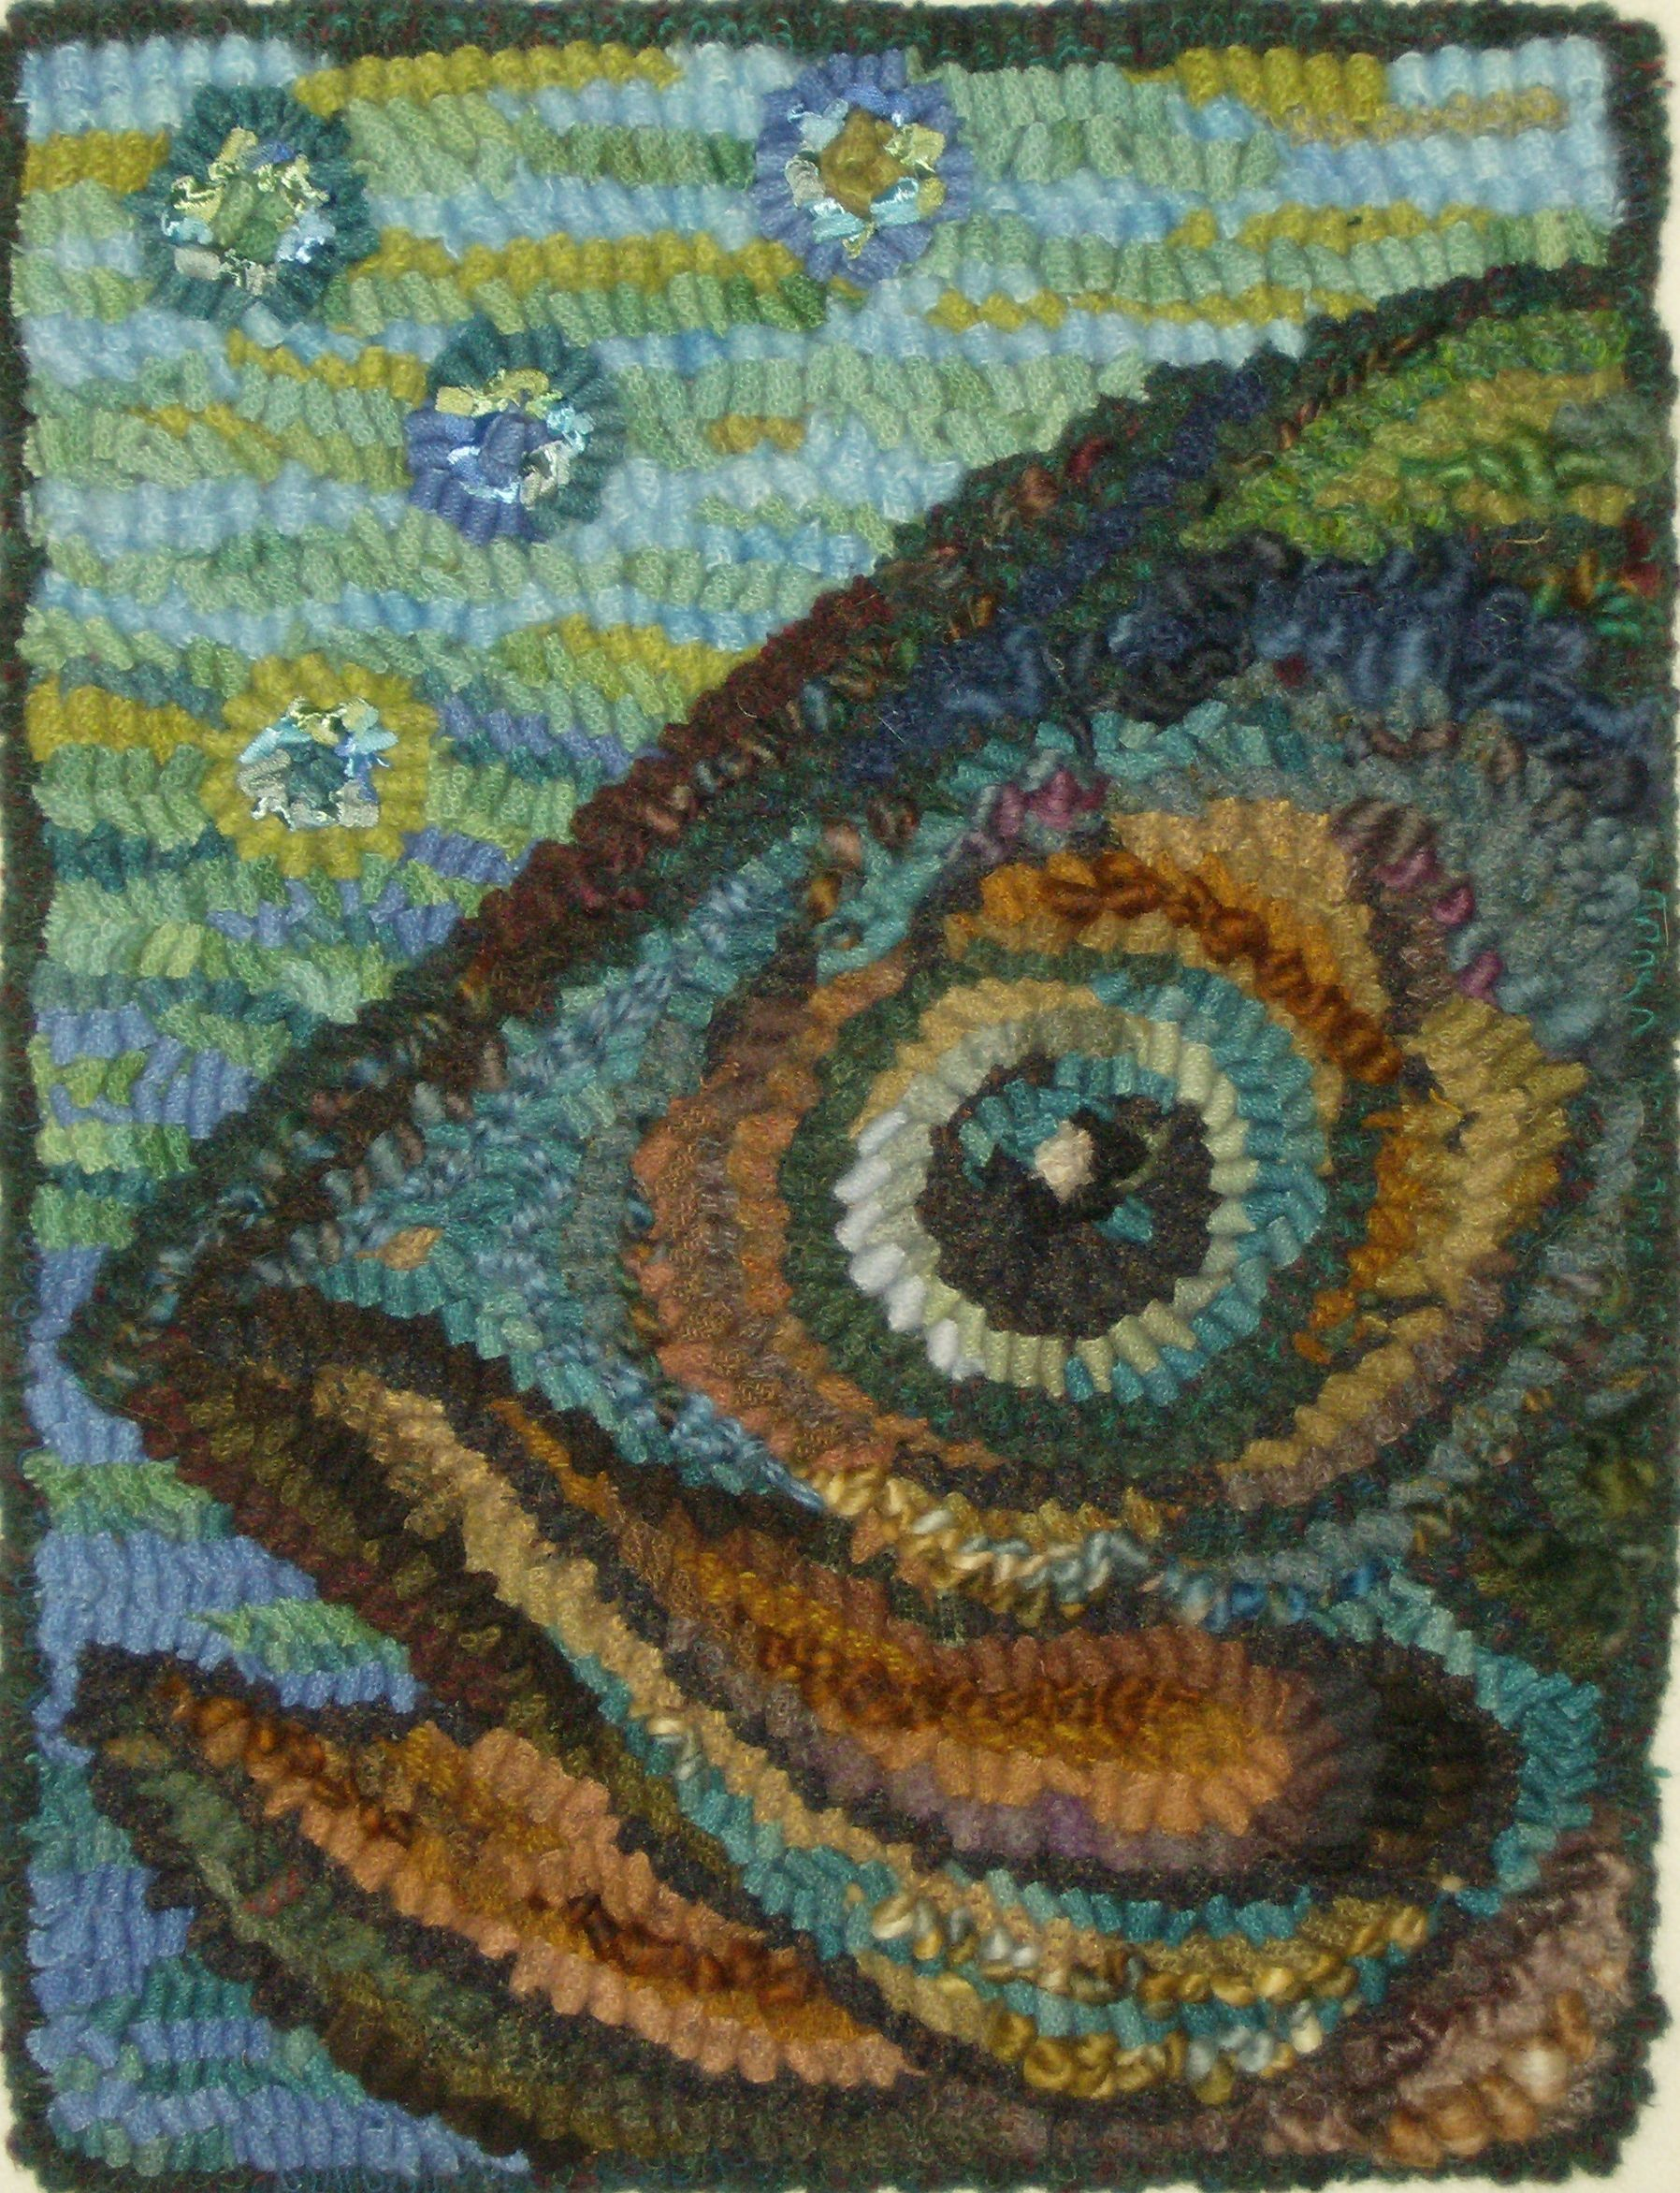 17 Best images about Rug Hooking on Pinterest | Wool, Newfoundland and  Sailing boat